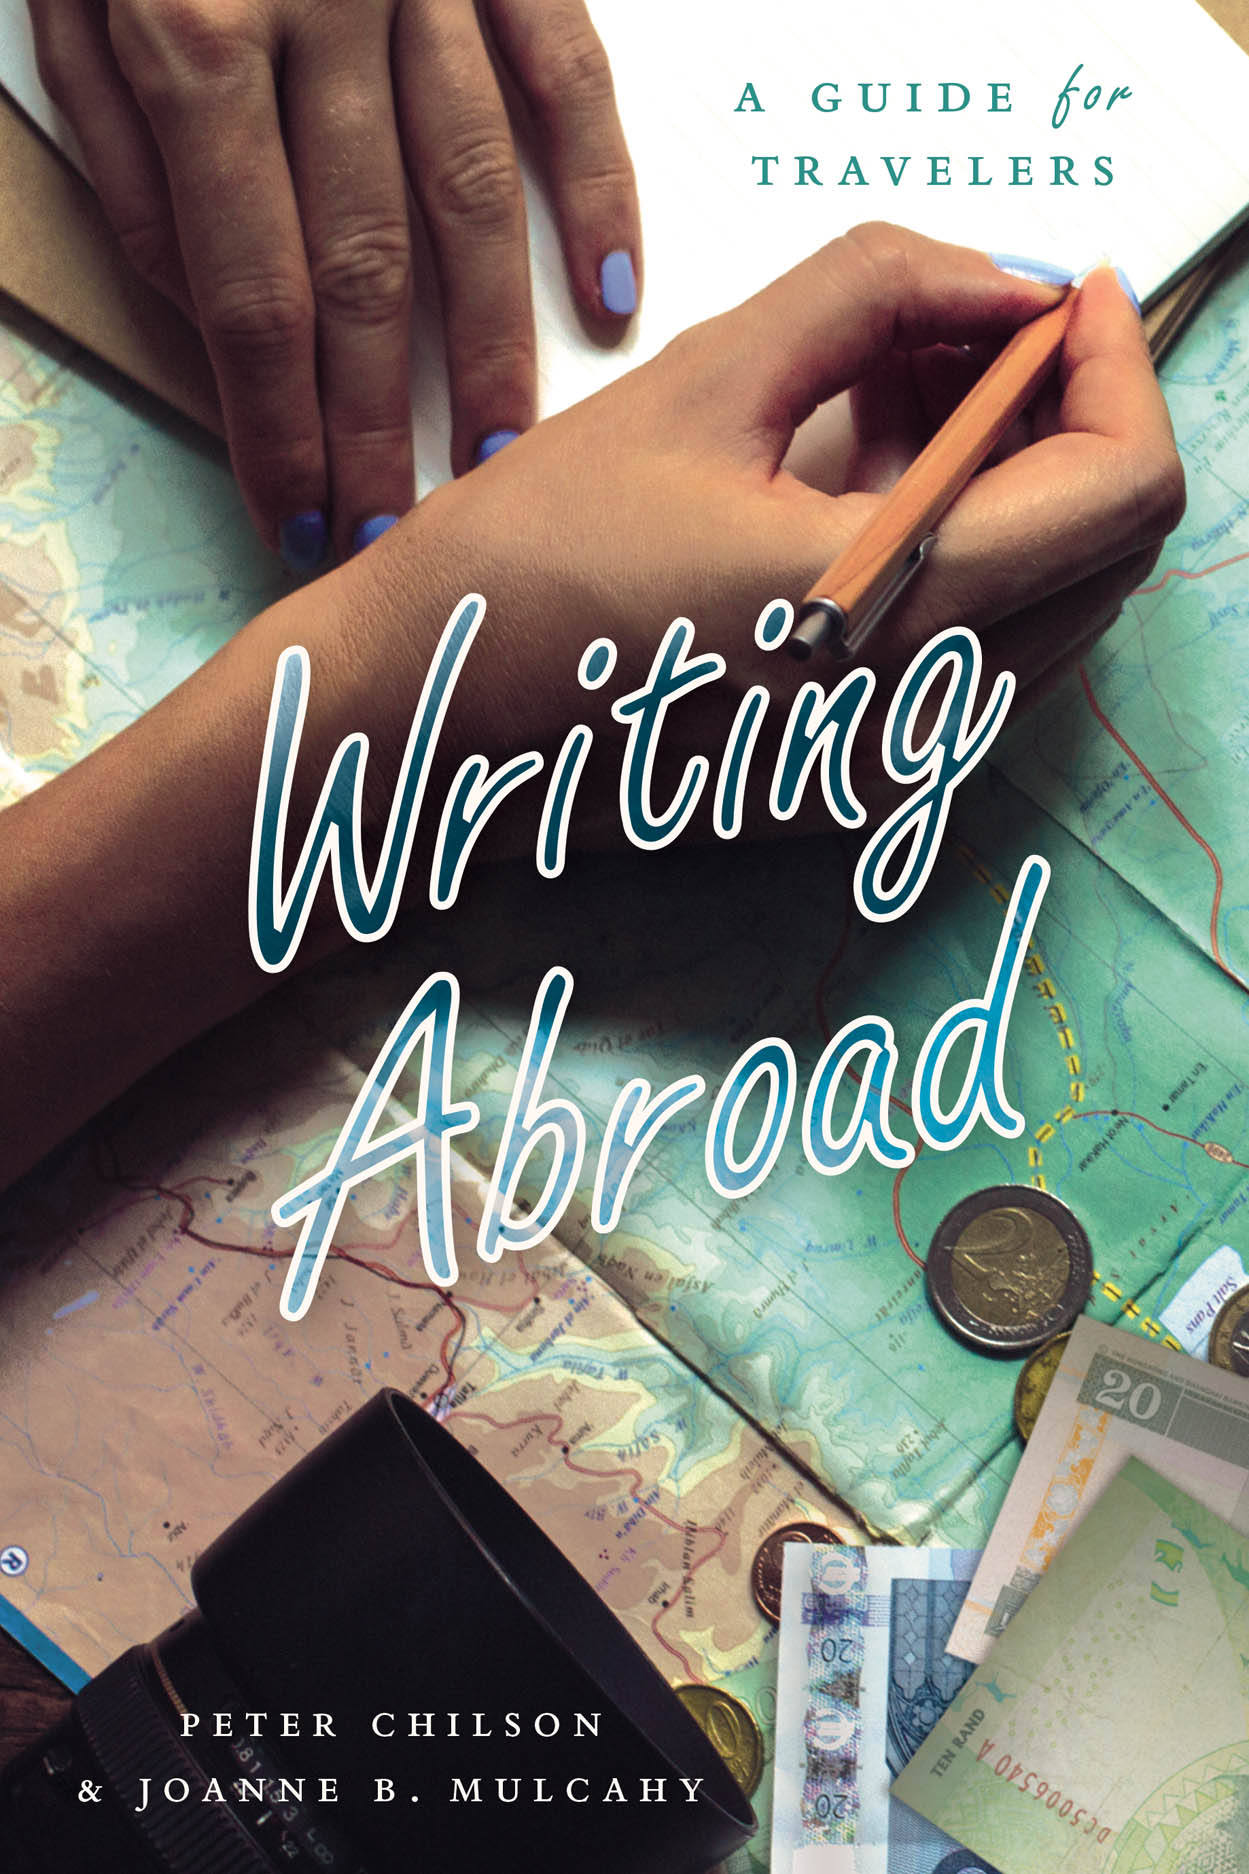 Writing Abroad: A Guide for Travelers